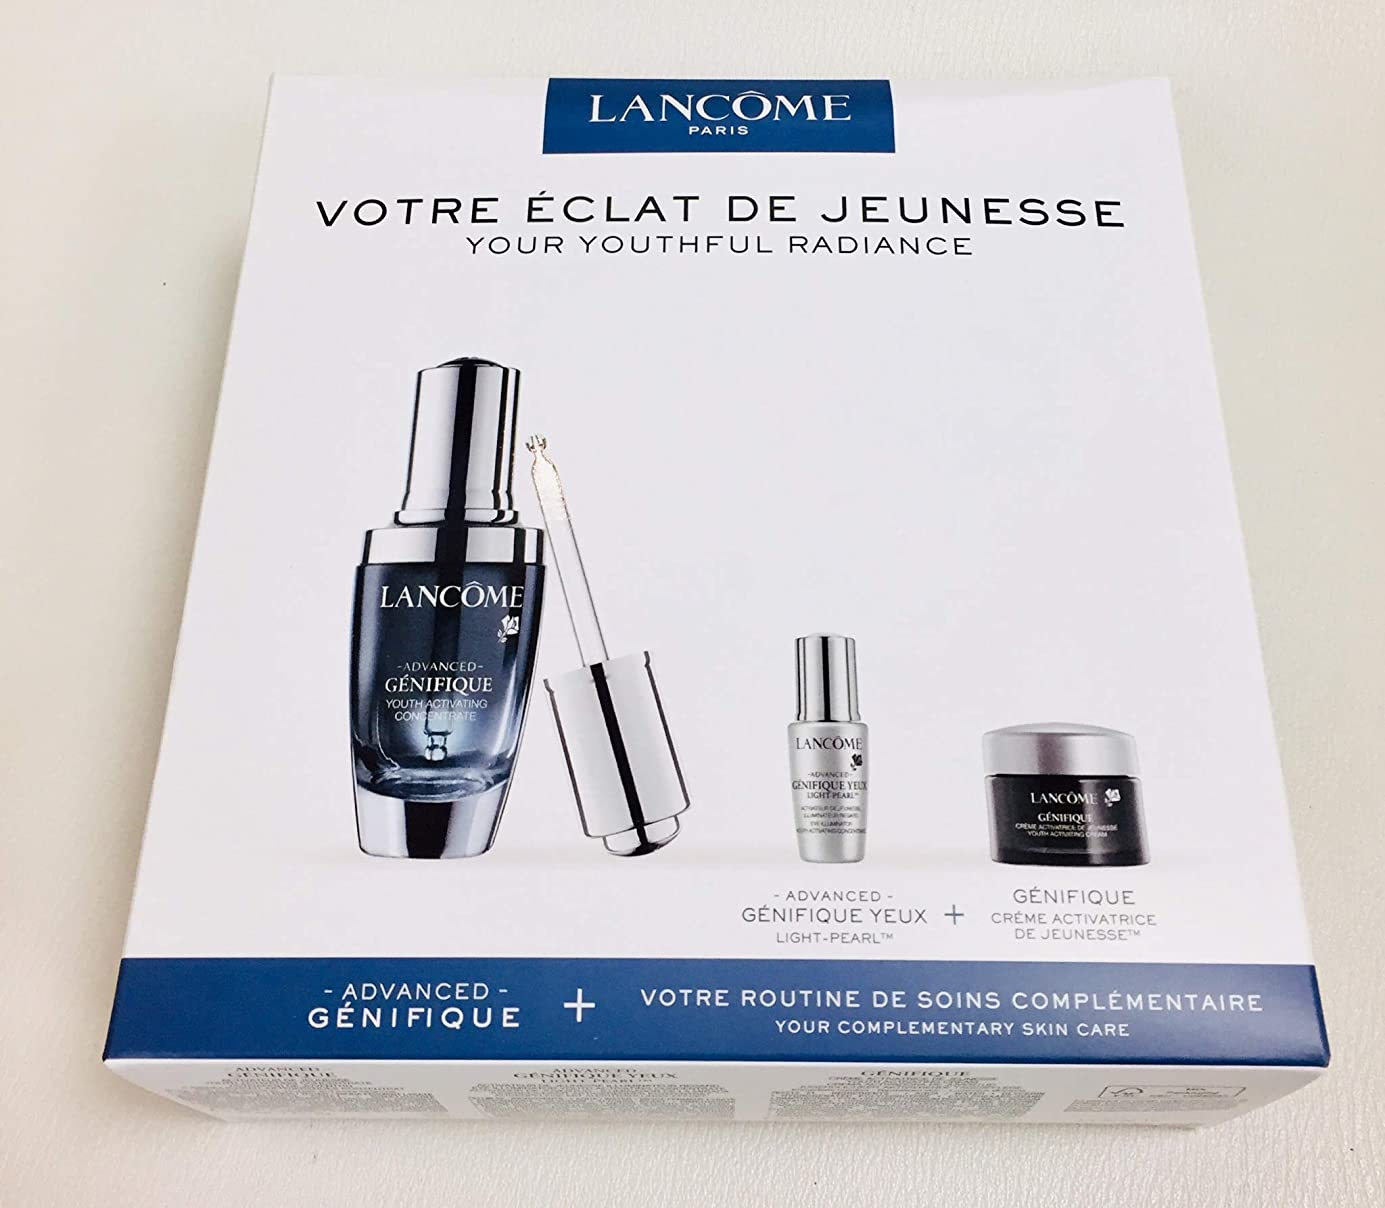 ビヨン解凍する、雪解け、霜解け排除するランコム Genifique Your Youthful Radiance Set: Genifique Concentrate 30ml + Genifique Yeux Light-Pearl 5ml + Genifique Cream 15ml 3pcs並行輸入品